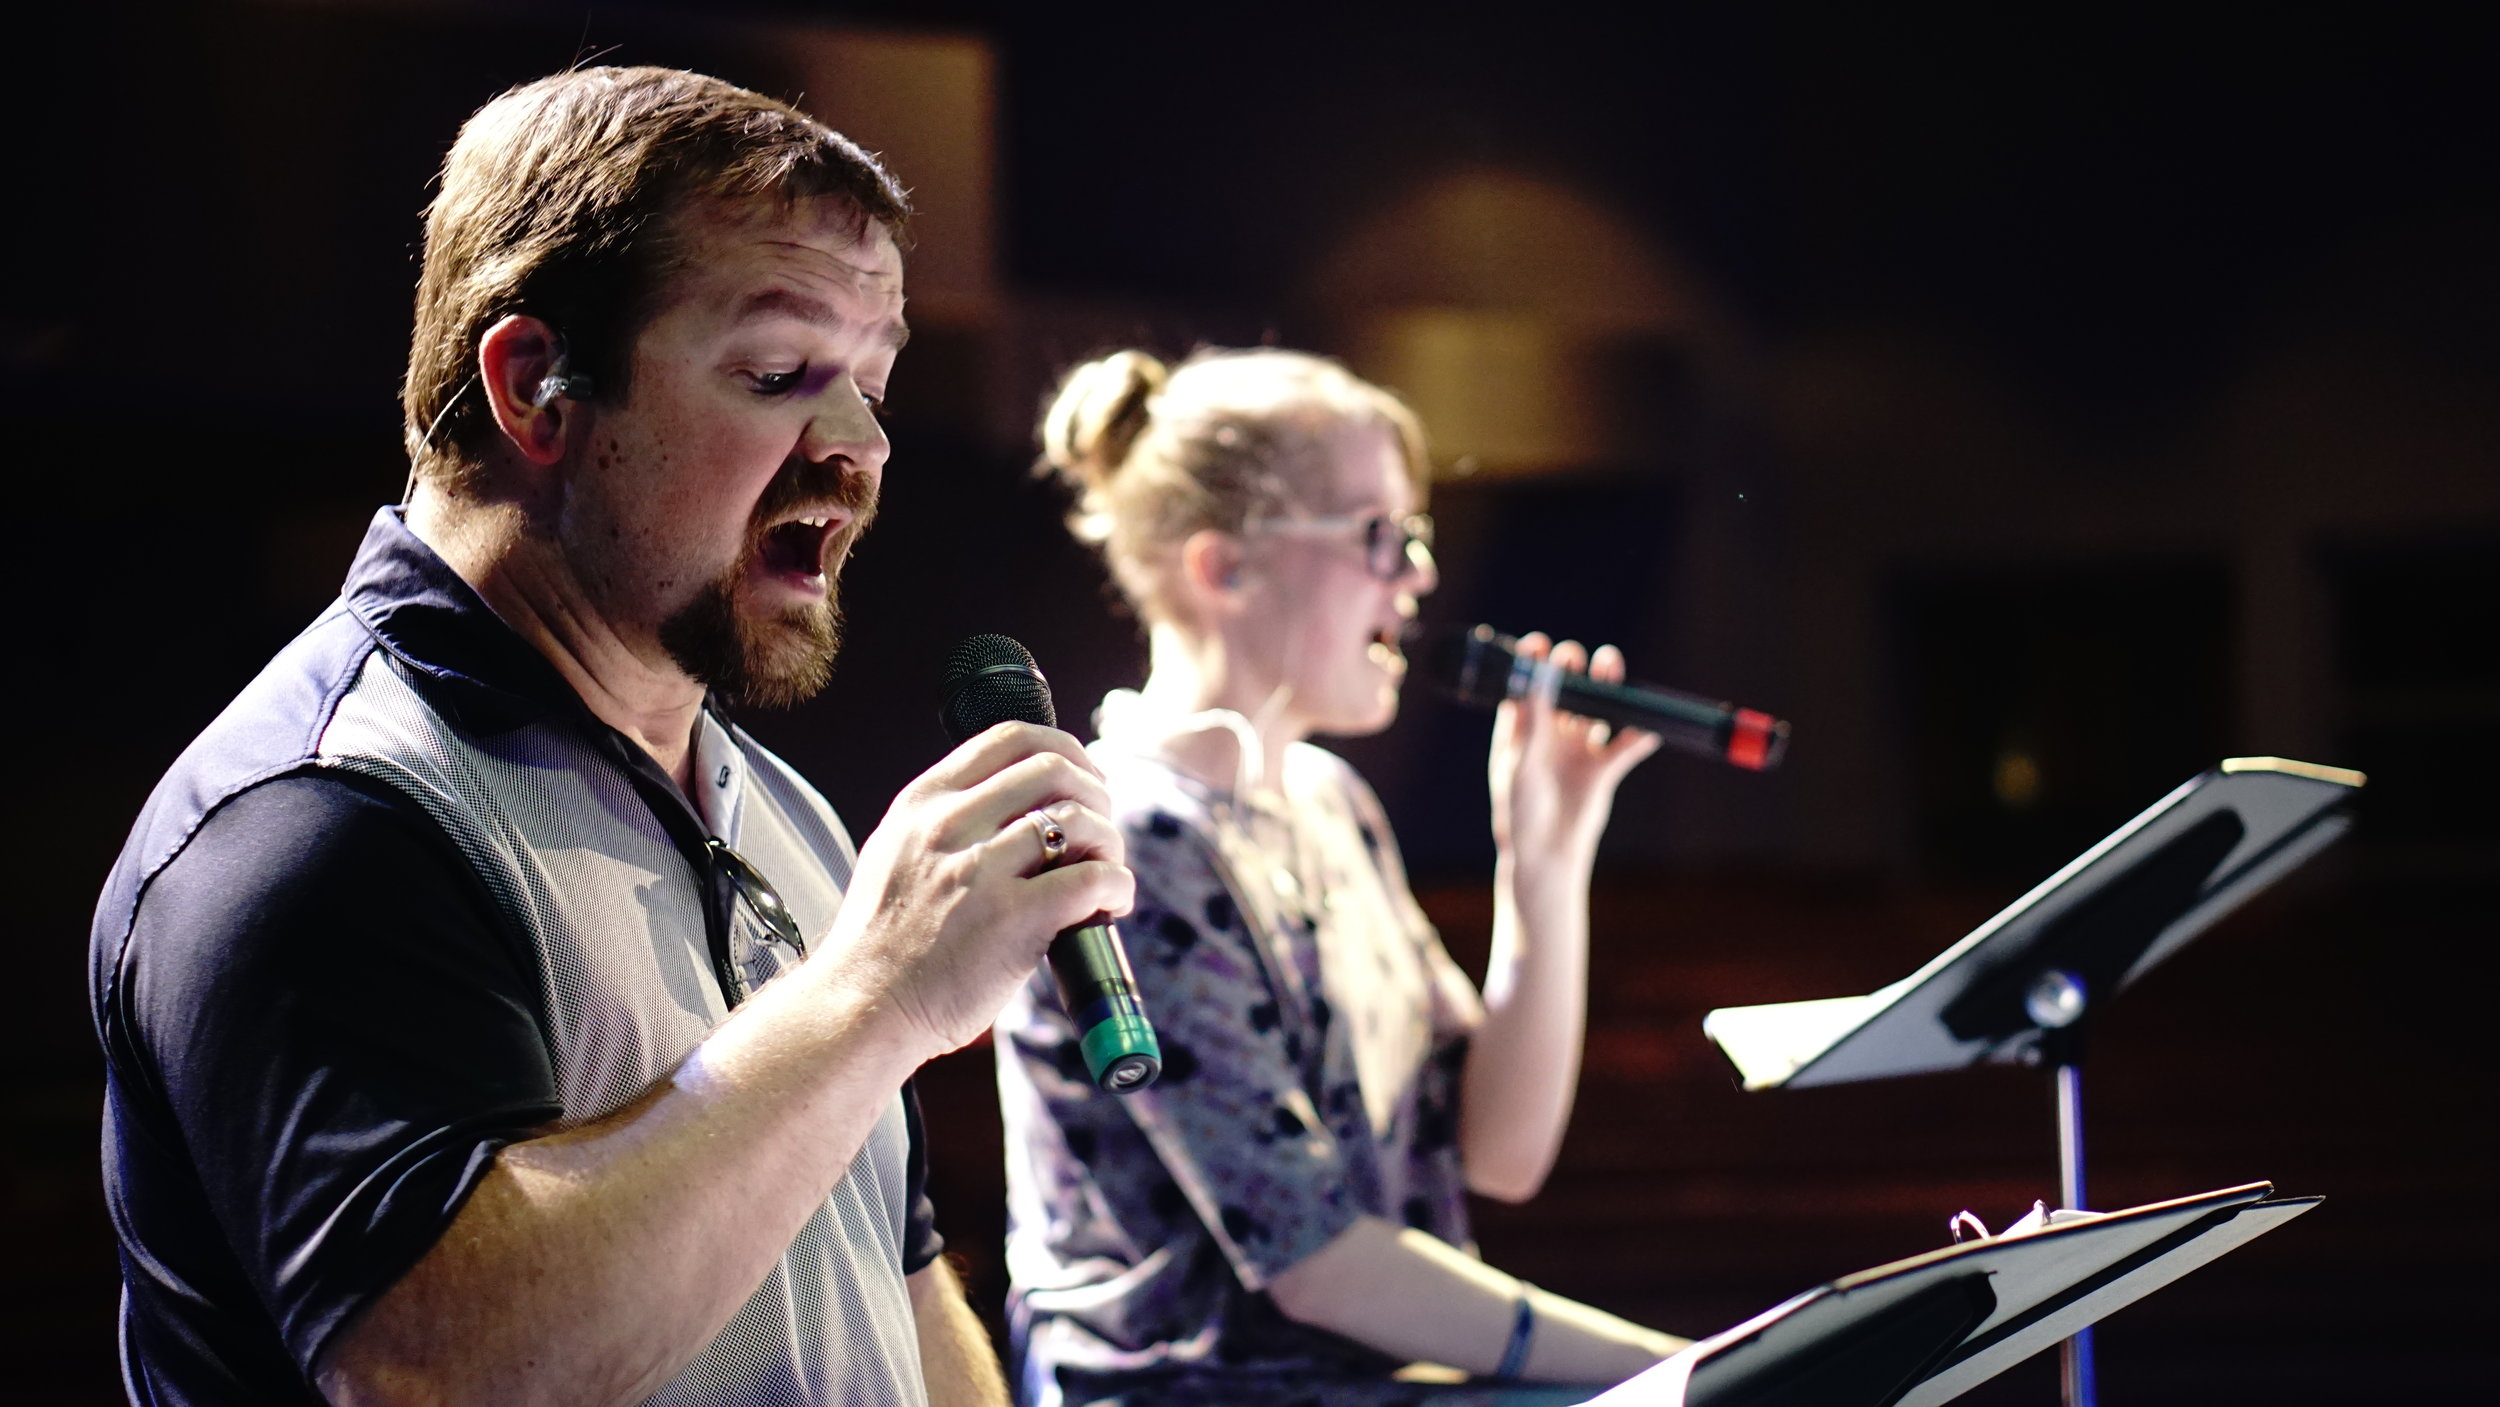 Worship - Using vocal, instrumental, technical, and visual gifts to lead the church in true worship